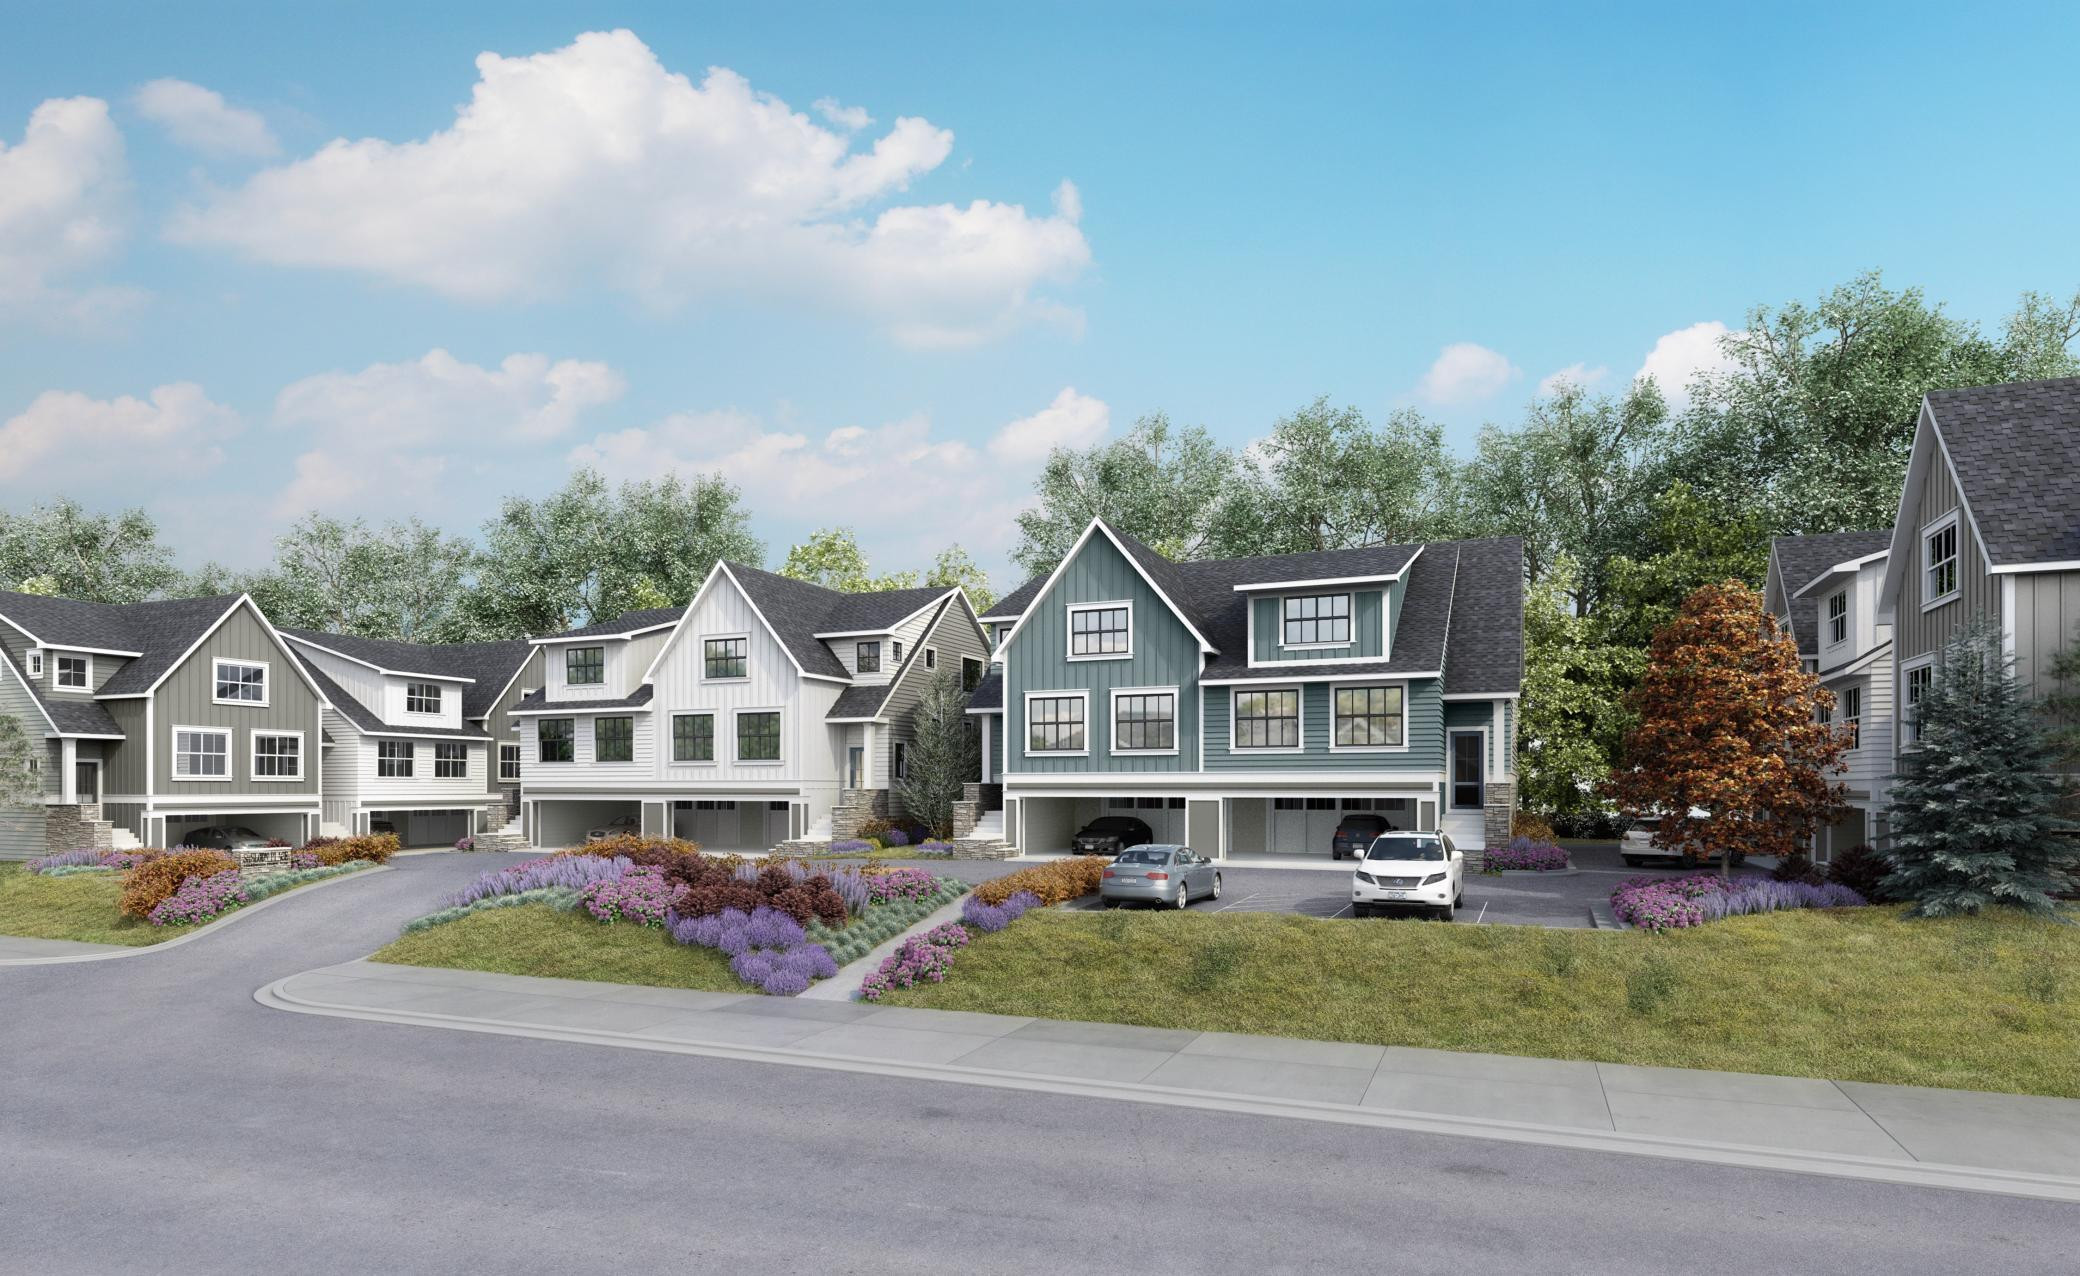 Sheldon Place is a new 10-unit luxury townhome development by Schaefco Development. All units have 3 bedrooms + den, 3 bathrooms and 2-car garages with storage.